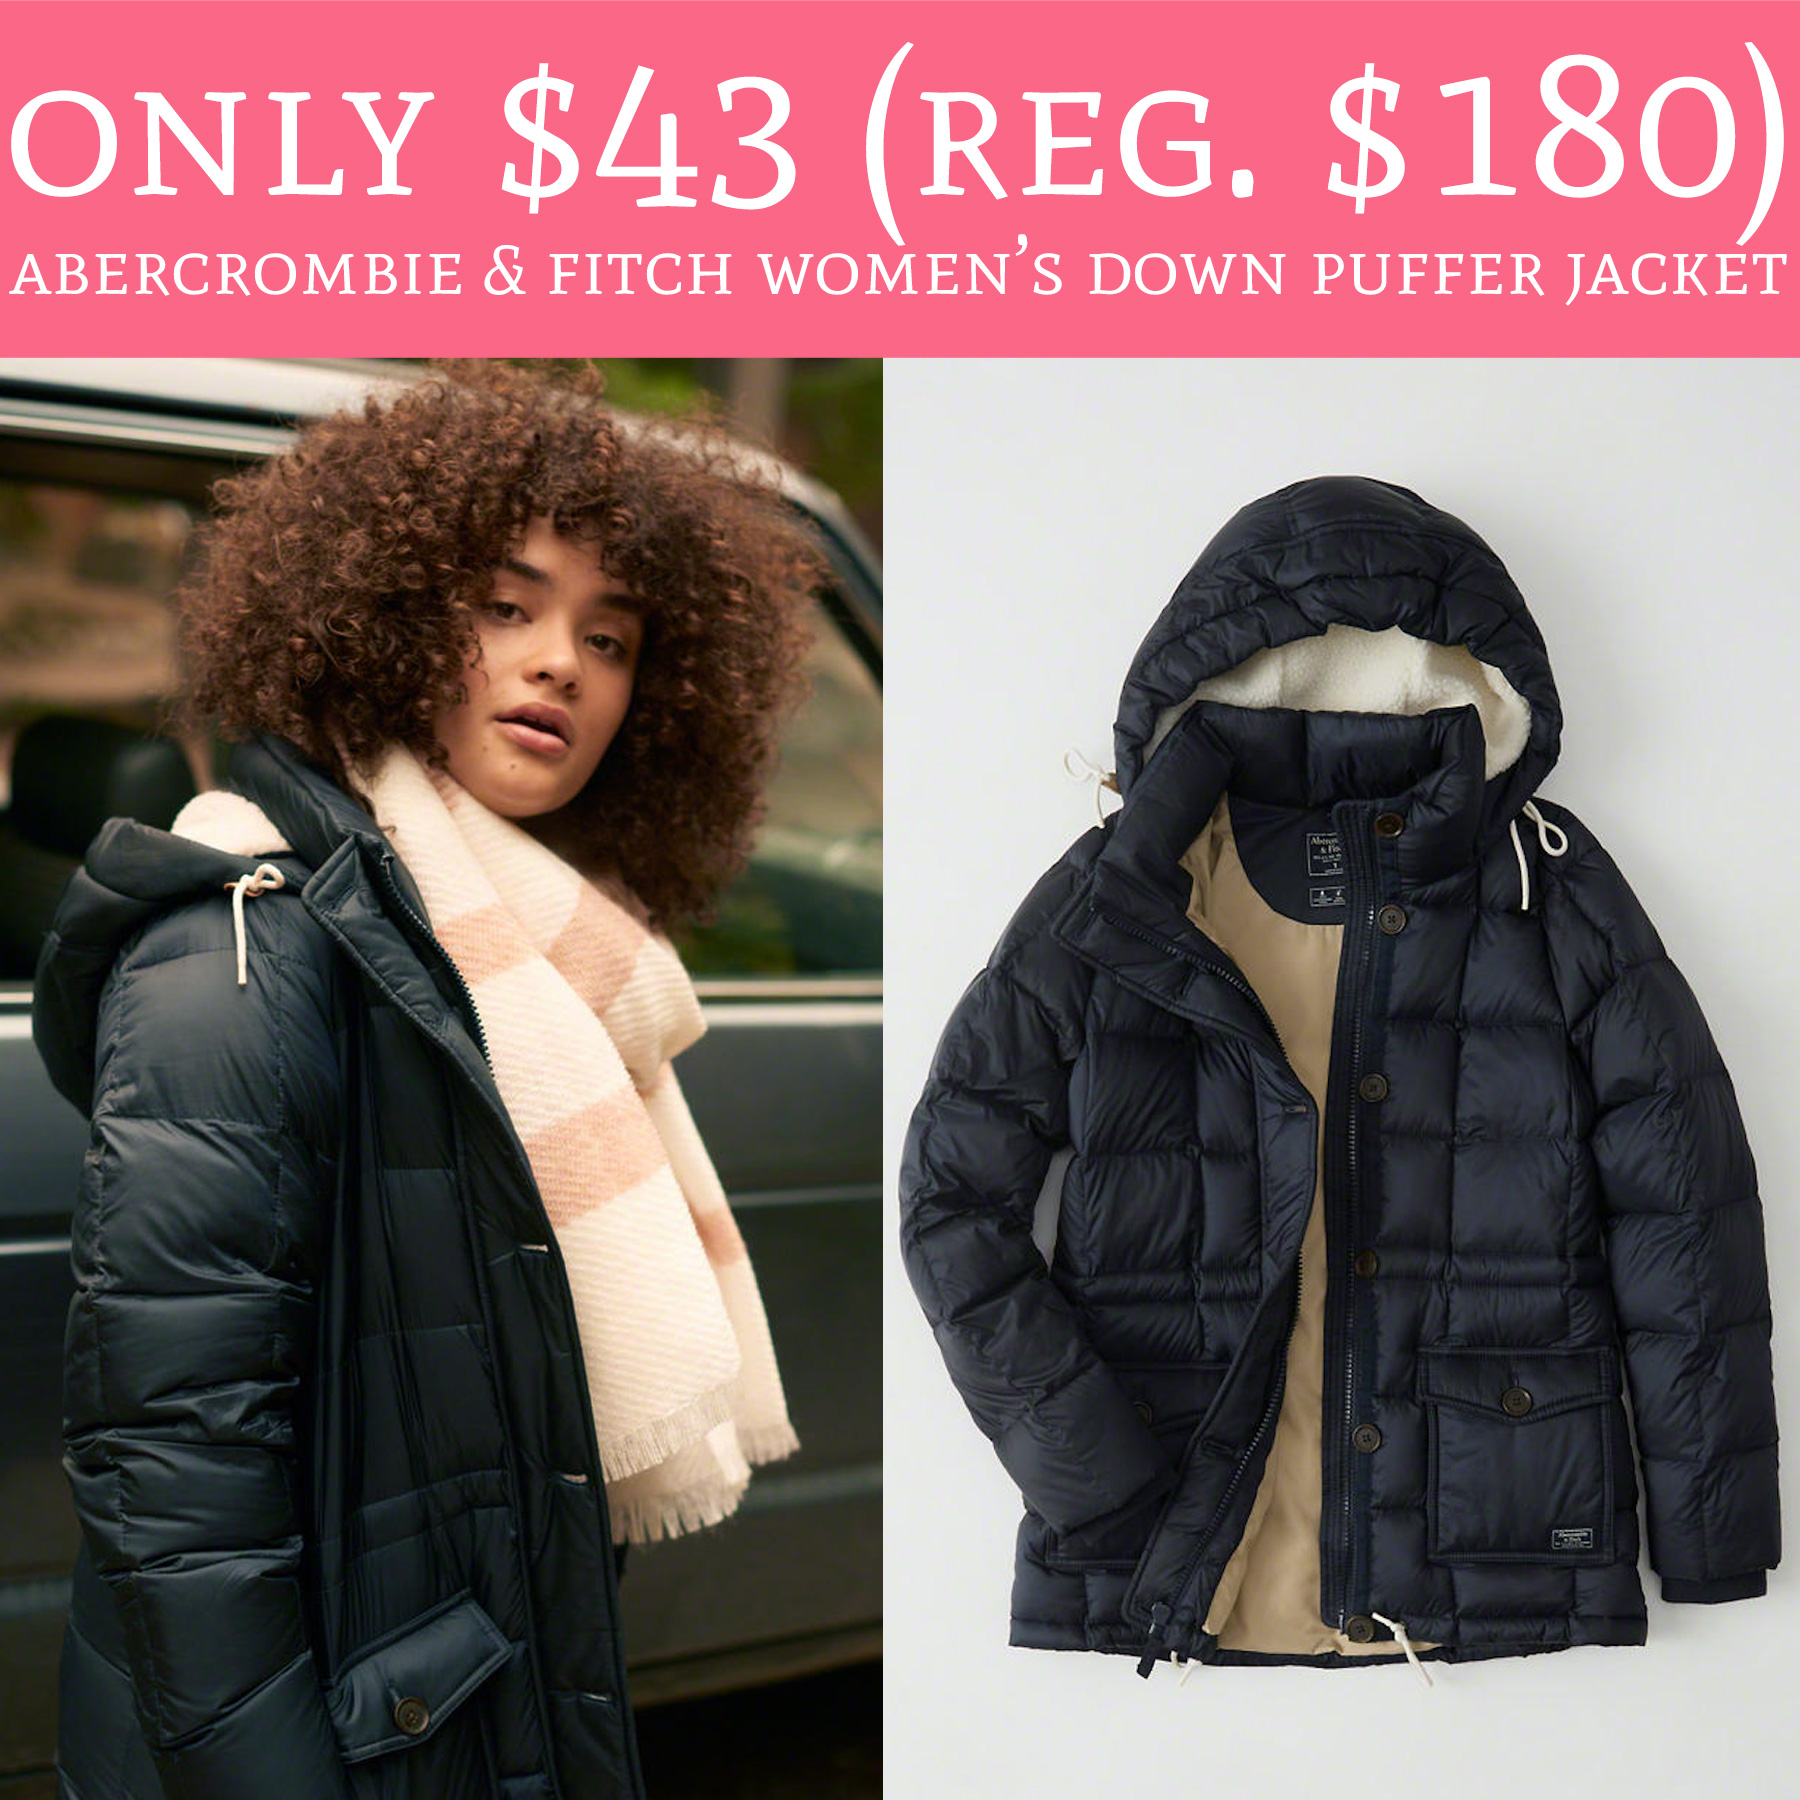 Abercrombie Fitch Accessories Abercrombie Fitch Womens: Only $43 (Regular $180) Abercrombie & Fitch Women's Down